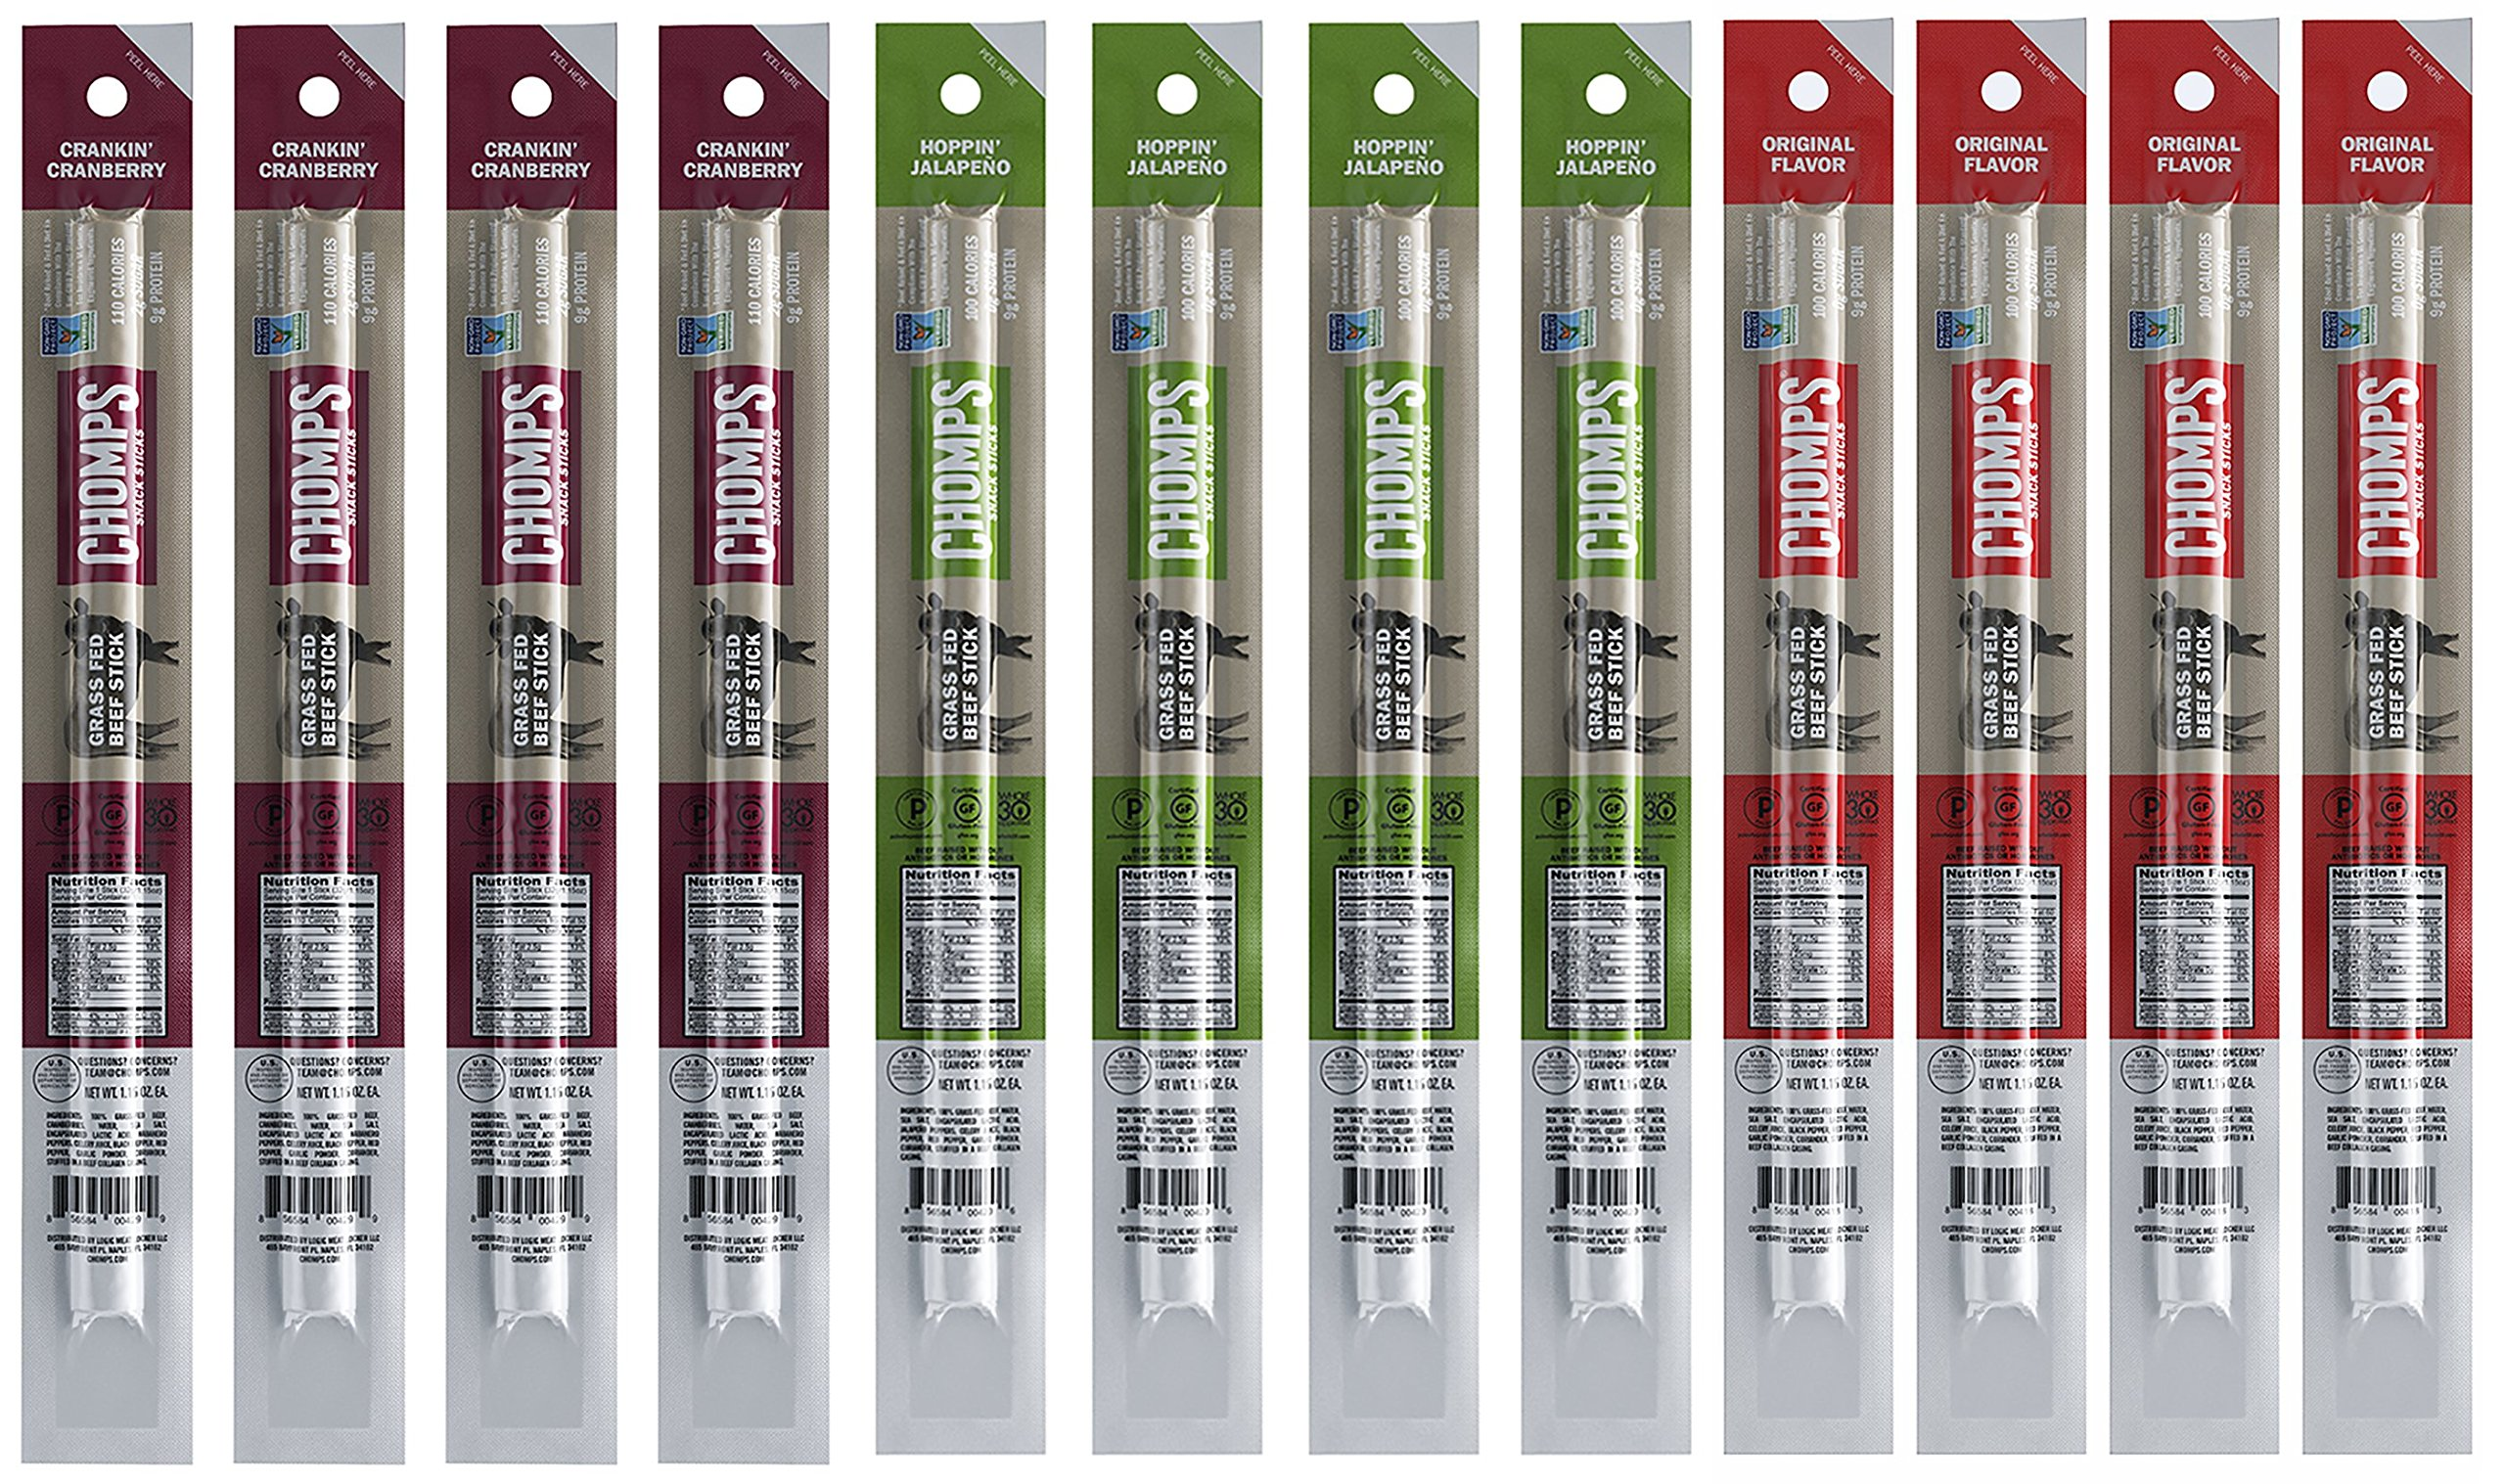 Chomps 100% Grass Fed Beef Snack Jerky Sticks Whole30 Variety Pack of 12, 3 Different Flavors